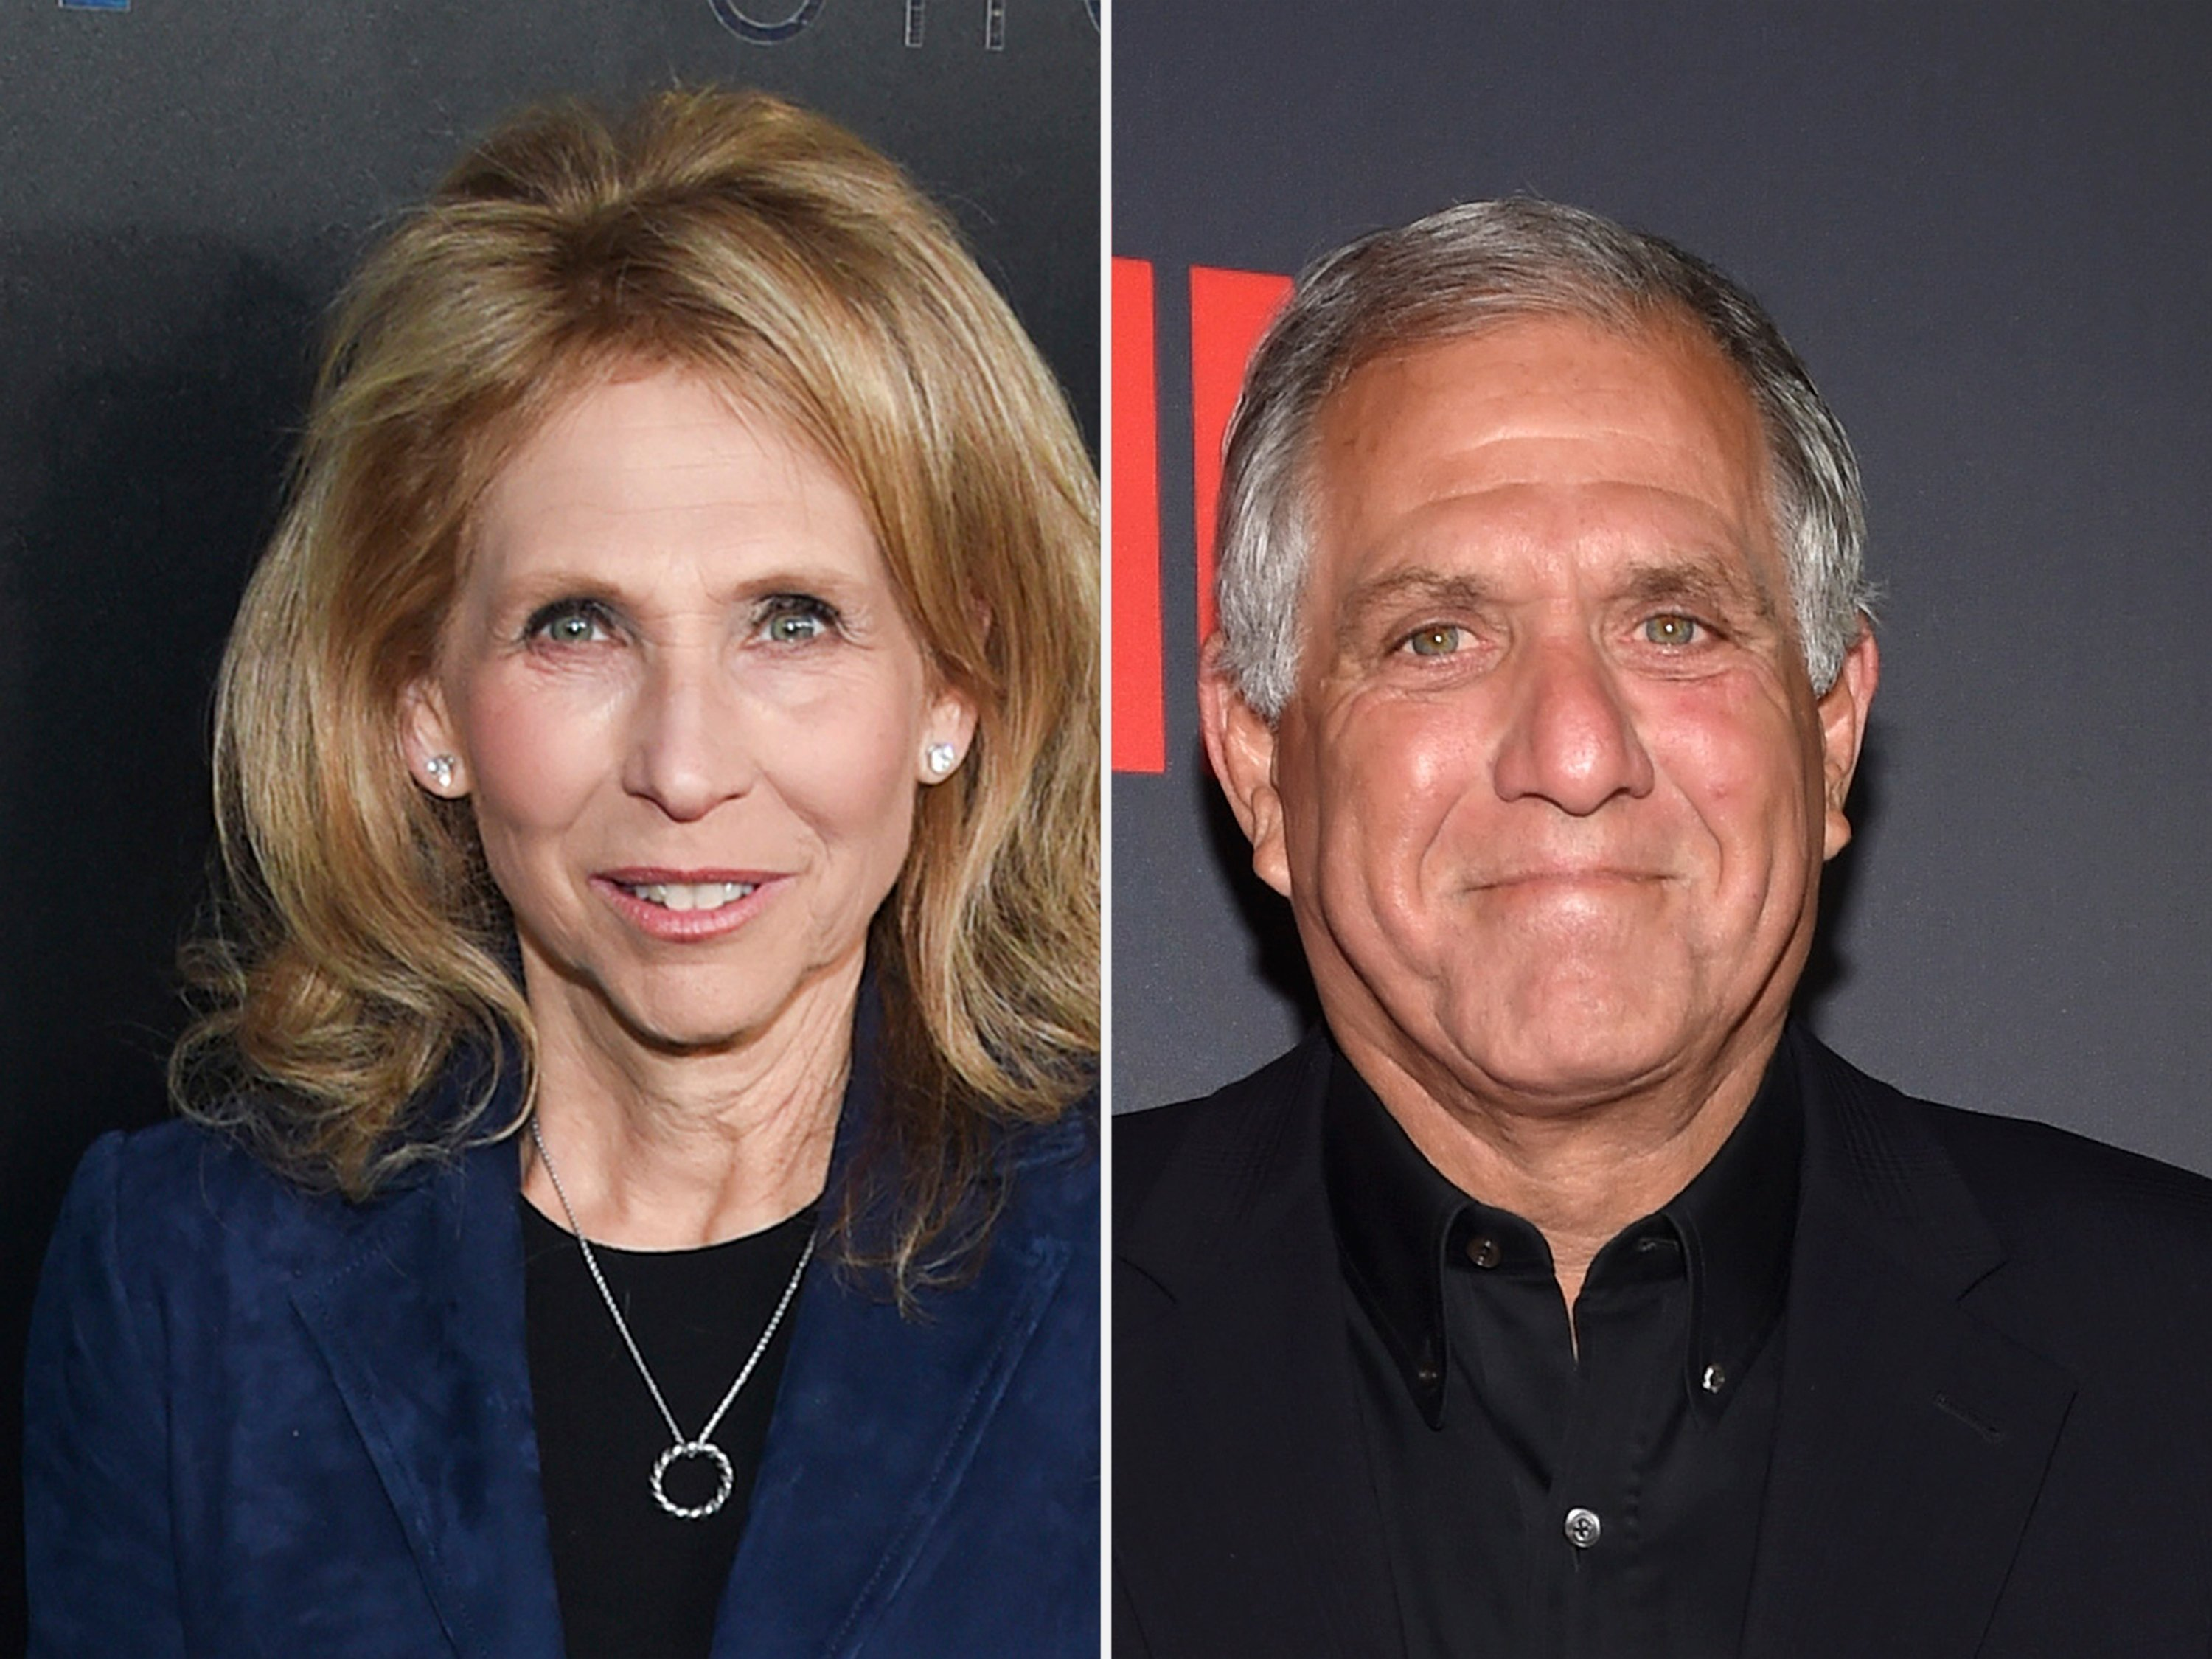 CBS, led by Les Moonves, is trying to wrest power away from Shari Redstone, the controlling shareholder of the company.